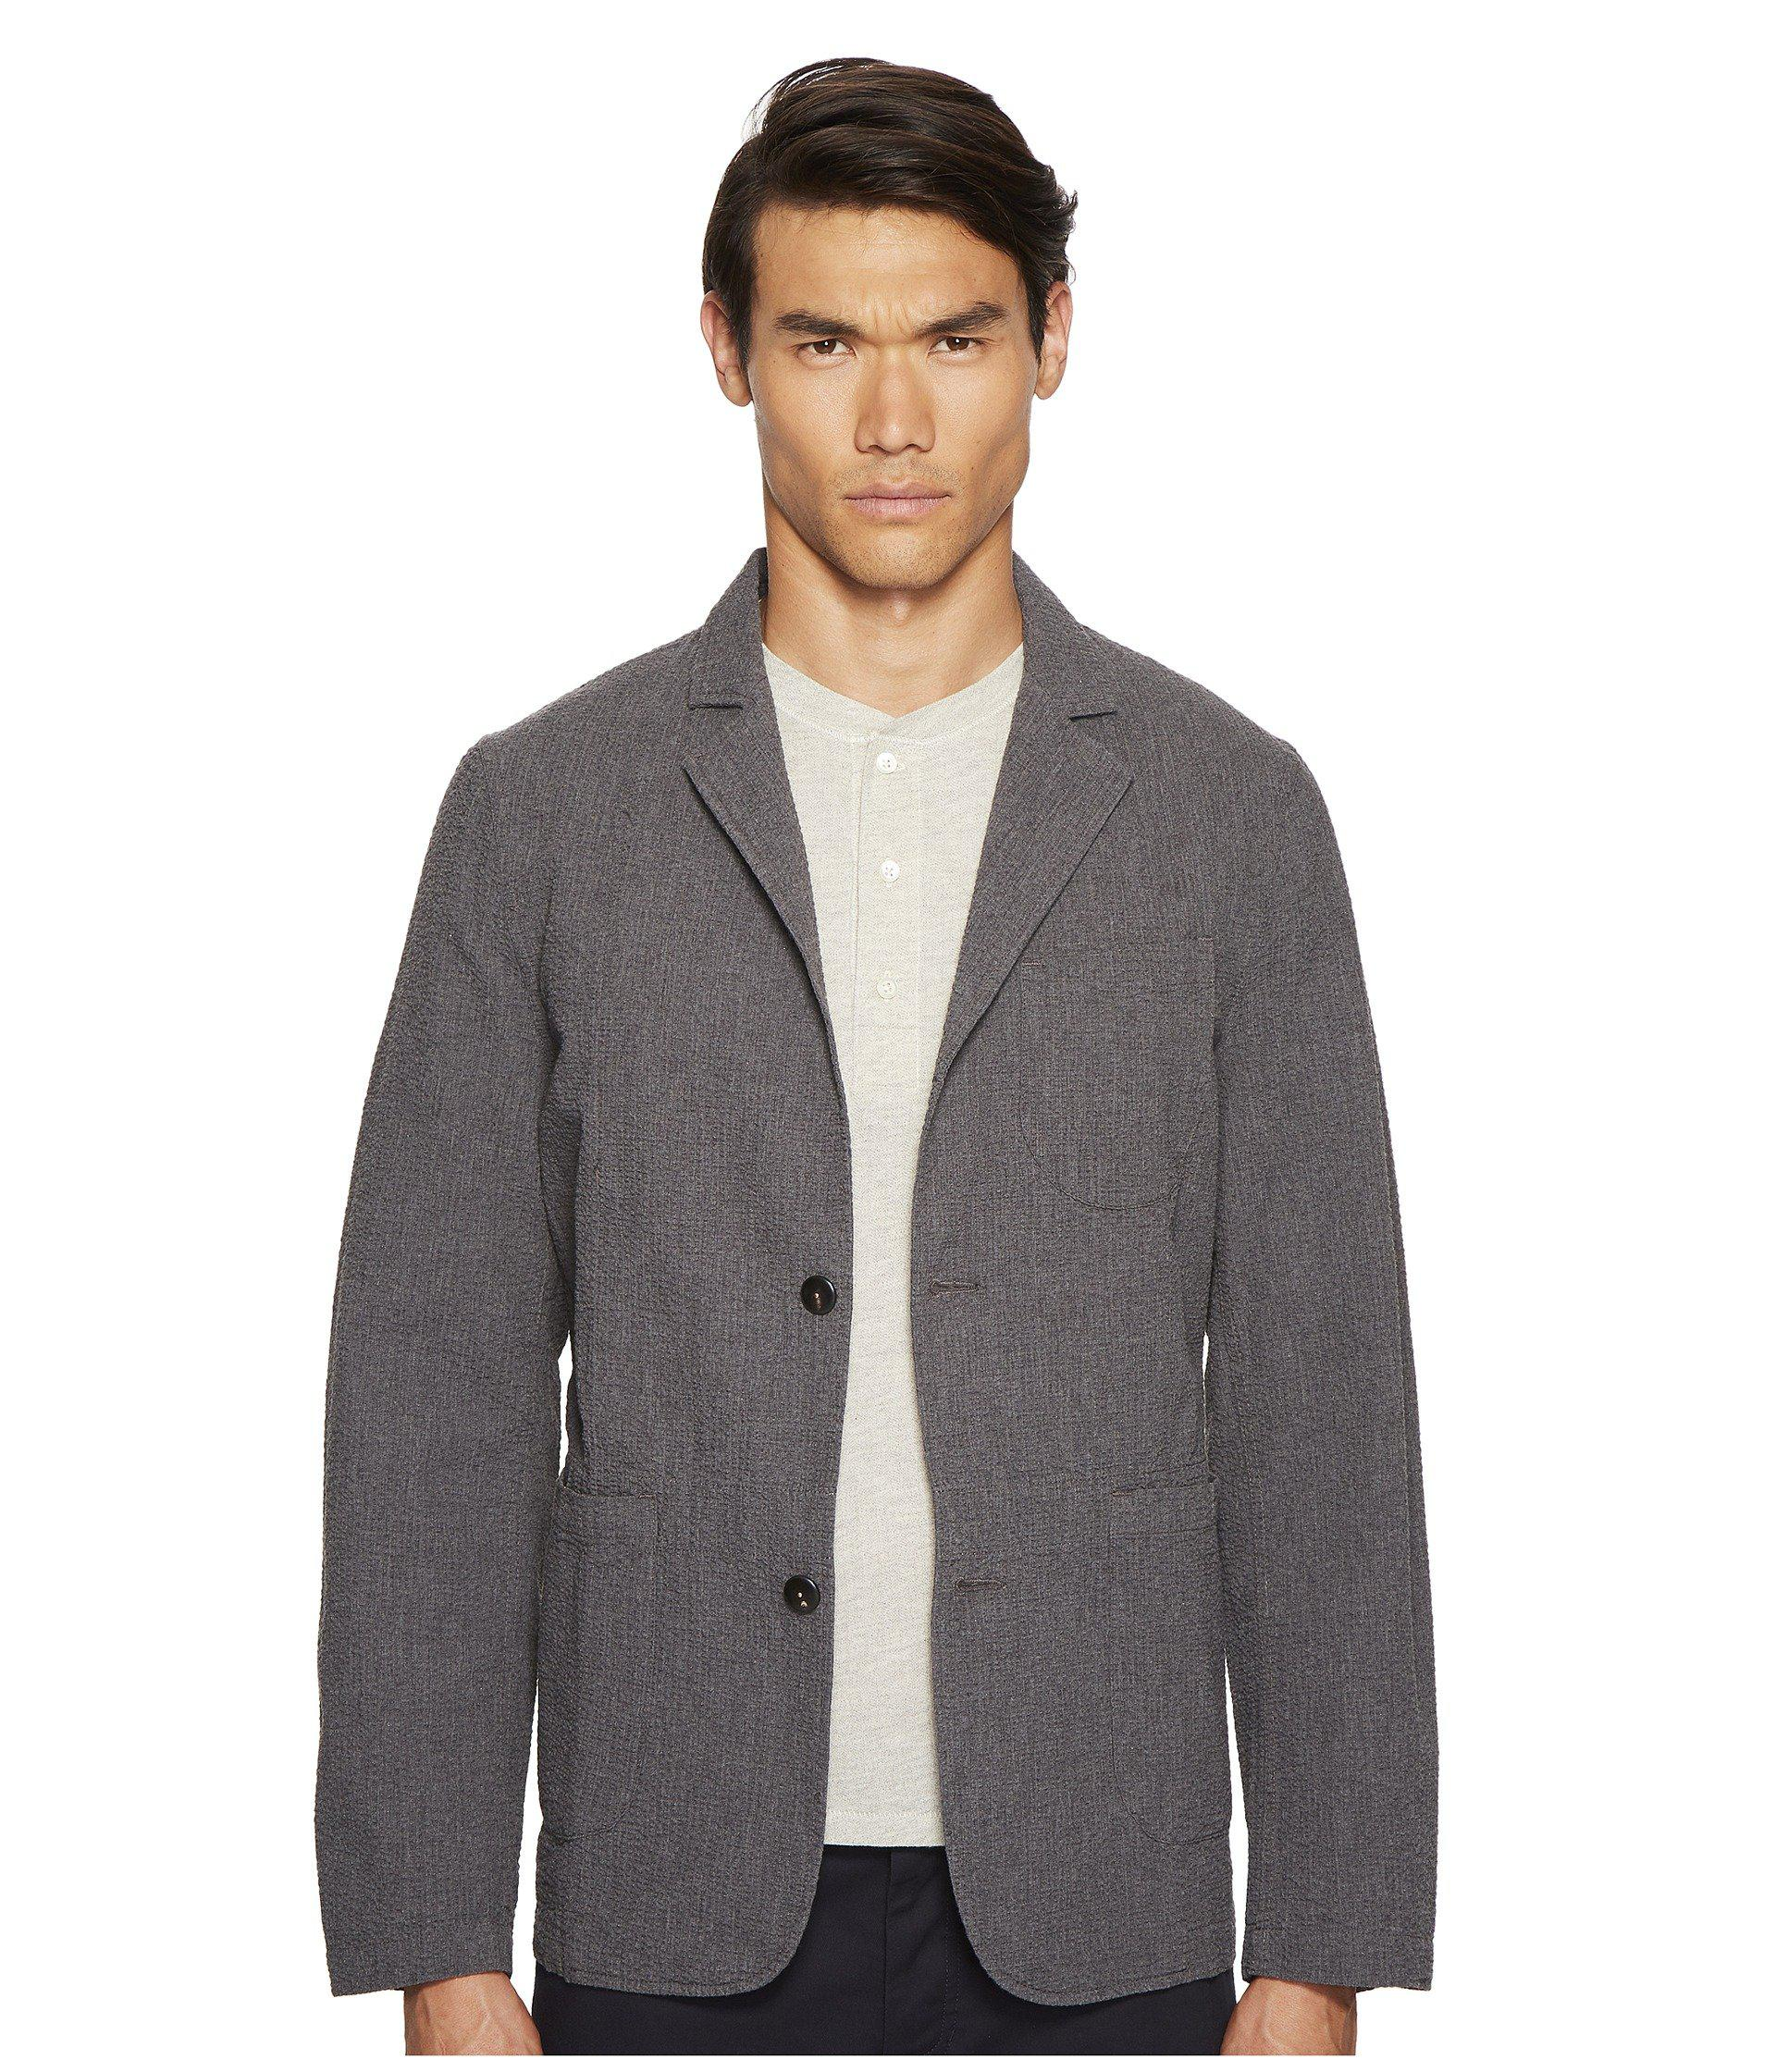 865f544ca6 Lyst - Billy Reid Luther Jacket in Gray for Men - Save 30%